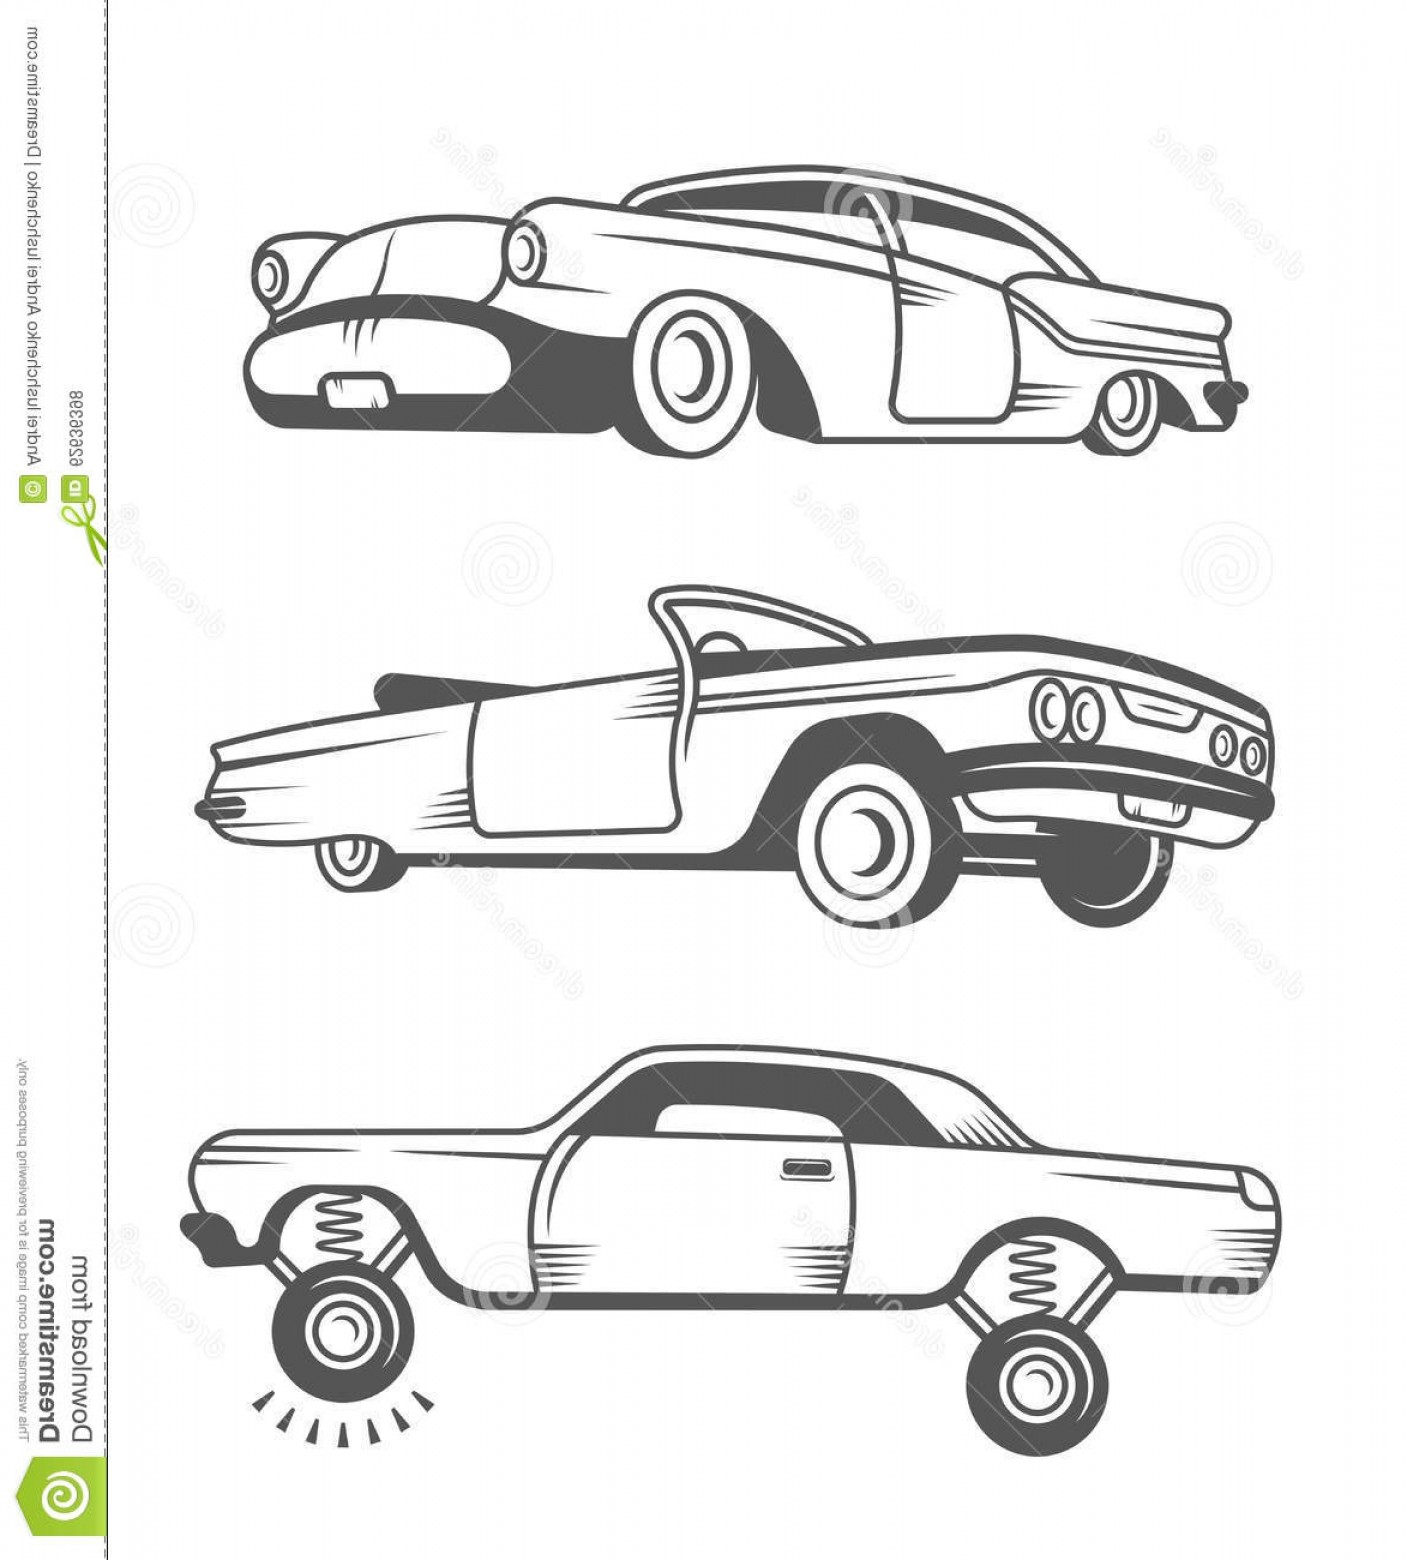 Lowrider Vector: Stock Illustration Set Vector Vintage Old Cars Lowrider Elements Design Collection Black White Classic Retro Car Stock Image